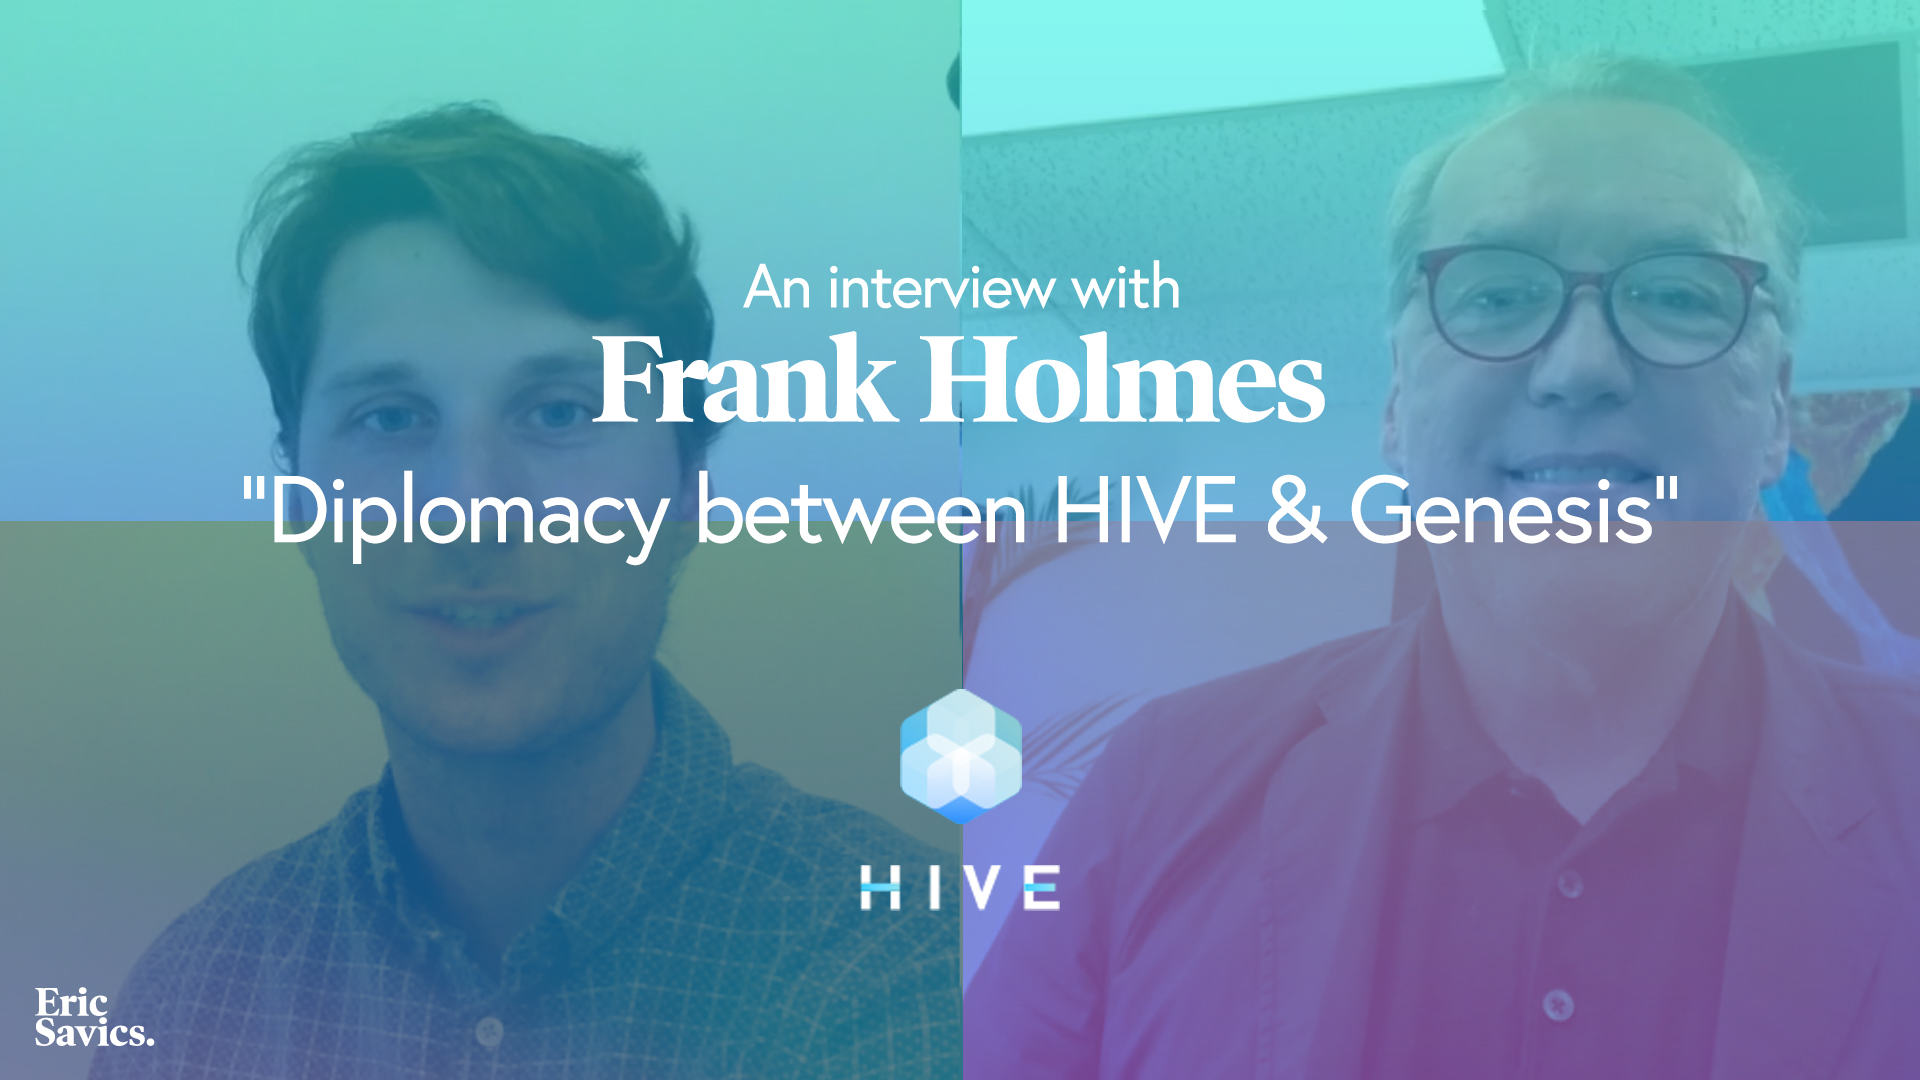 Diplomacy between Hive & Genesis - In the spring of 2019 Genesis Mining attempted to take over the HIVE Blockchain board in reaction to HIVE demanding a return of $50 million USD from Genesis Mining for material breaches of the HIVE/Genesis master services. After months of hostility and dormant operations, HIVE Blockchain and their operational partner Genesis Mining have resolved their disputes.